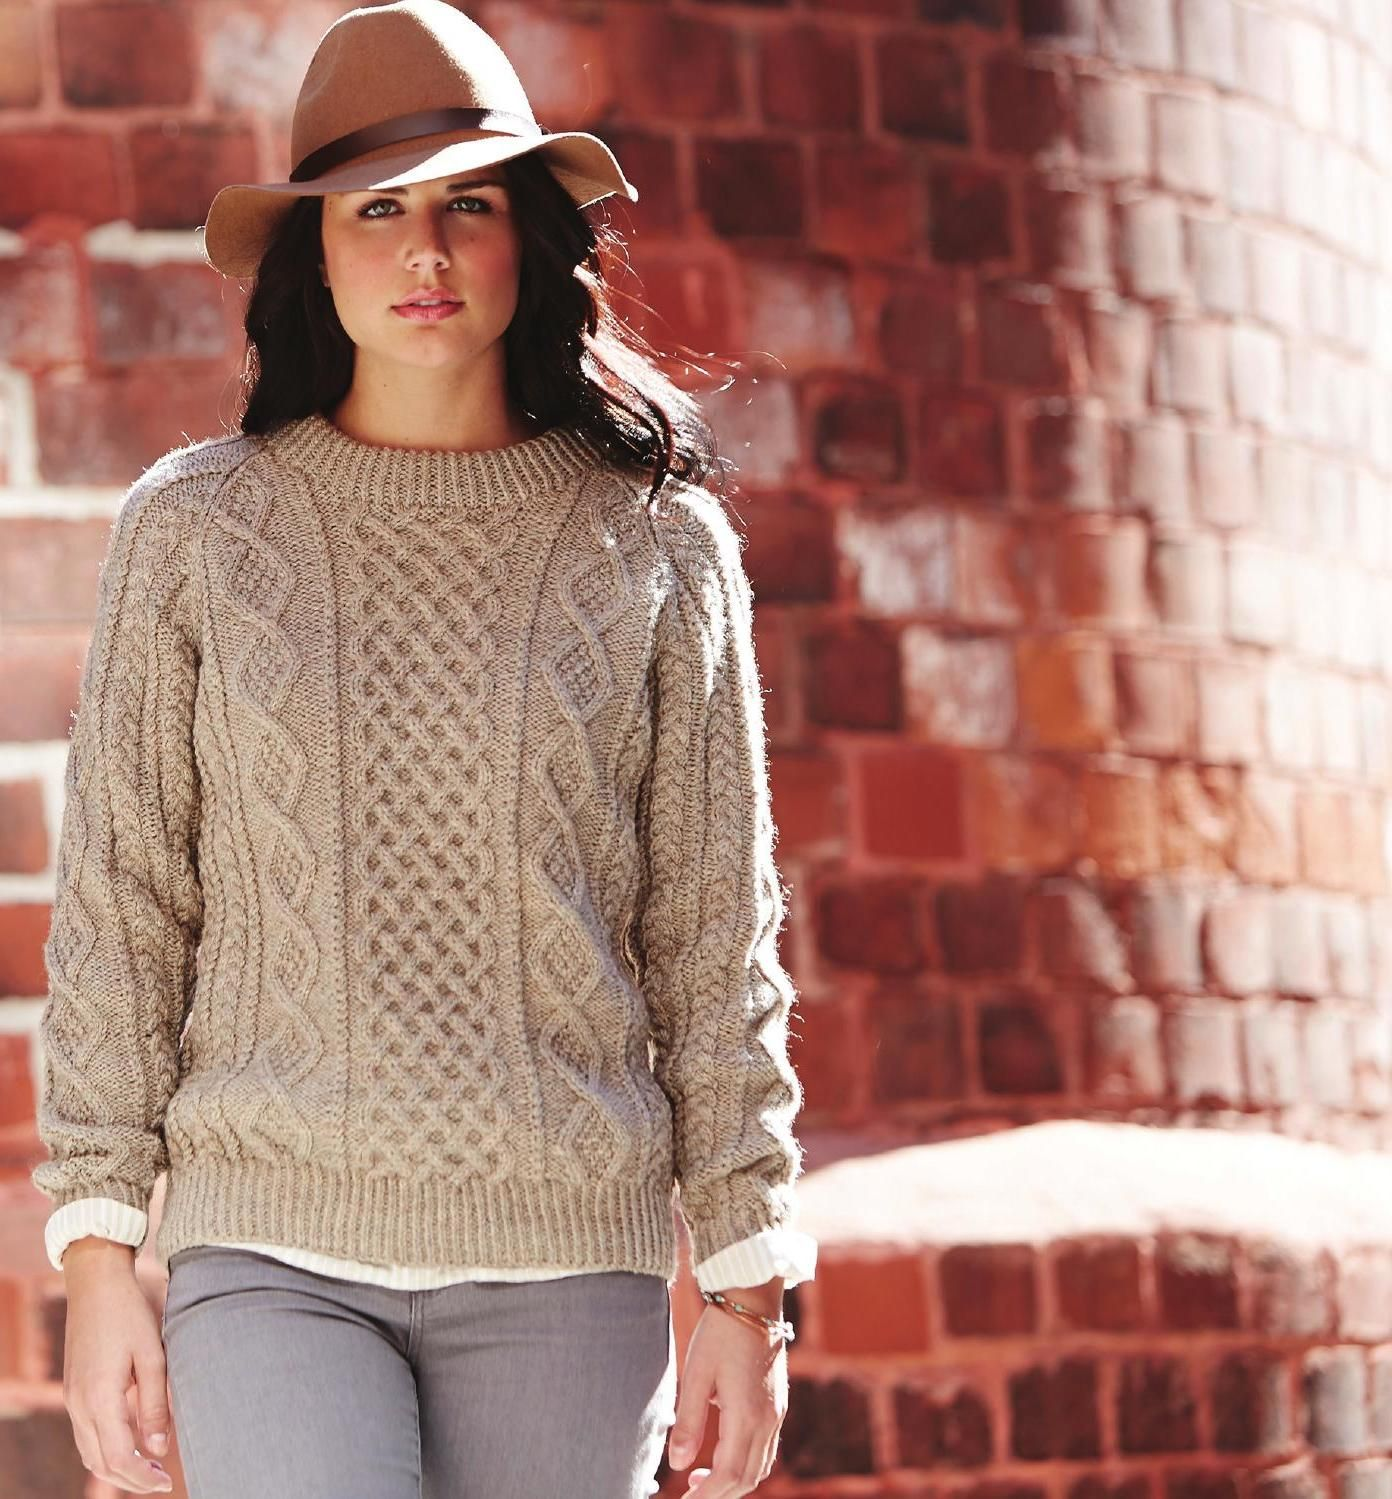 #ClippedOnIssuu from Yarnspirations.com 2014 Fall Lookbook ~ Honeycomb Aran pullover sweater